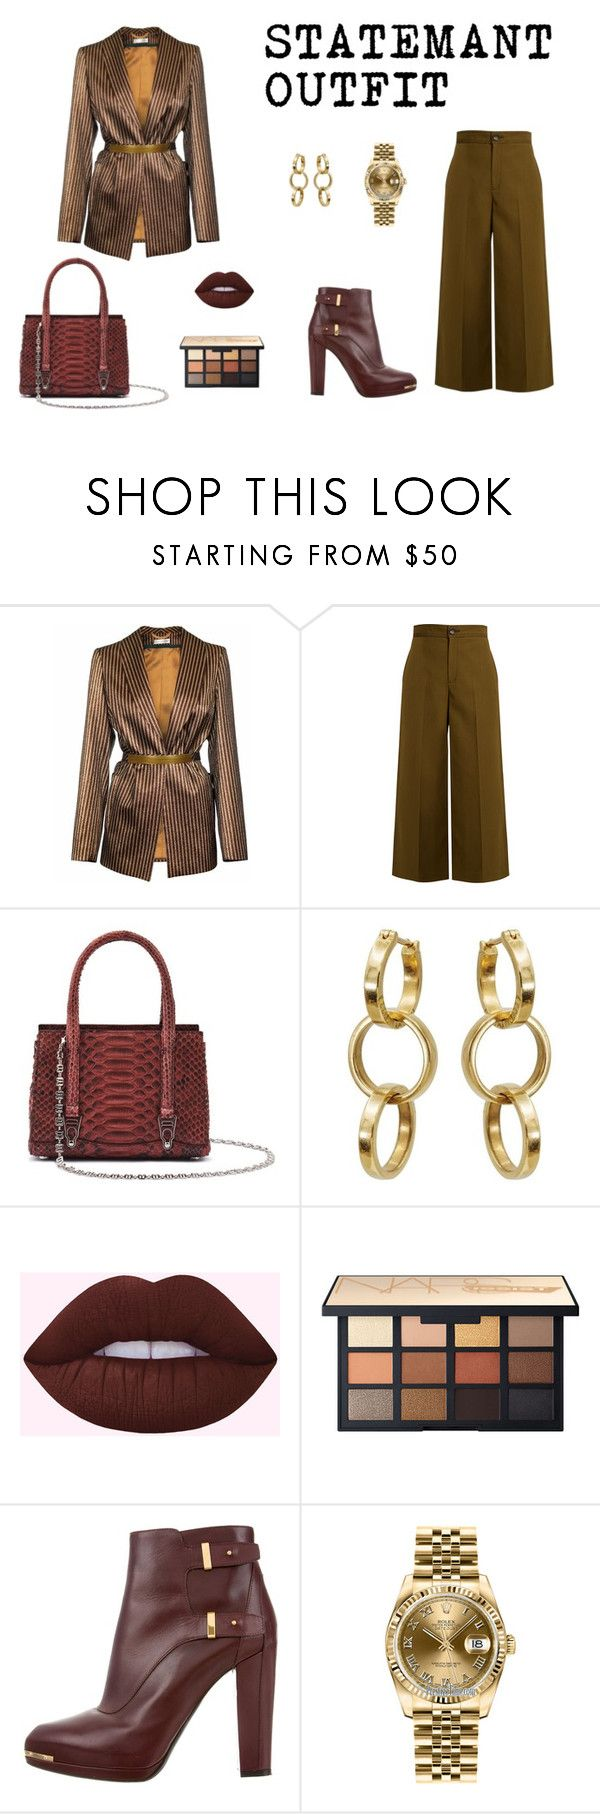 """Statemant Outfit"" by d-rose0181 on Polyvore featuring JIRI KALFAR, Joseph, La Perla, Belstaff and Rolex"